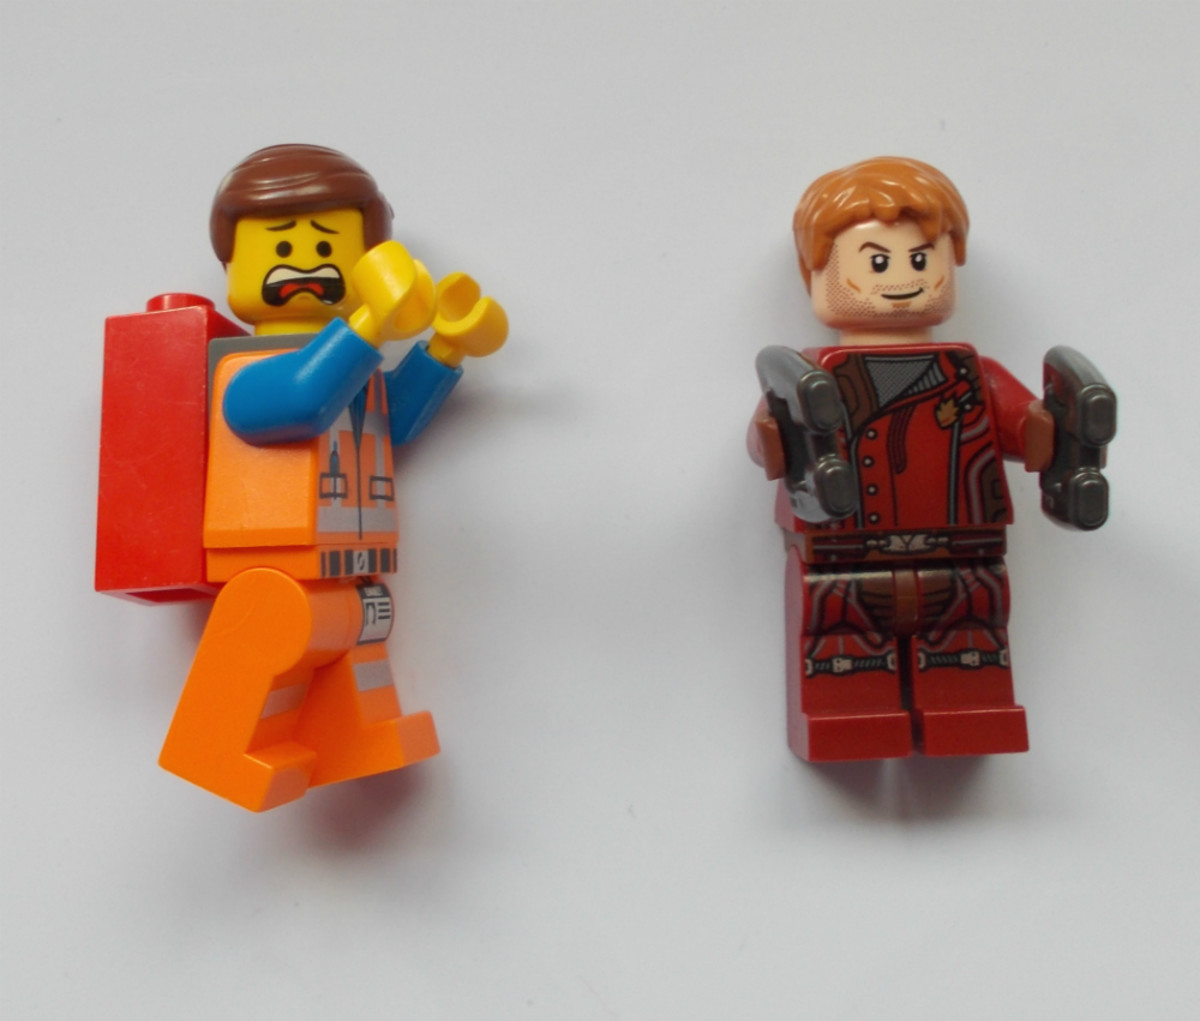 Which Actor Is 'The Special' of Lego Minifigures?